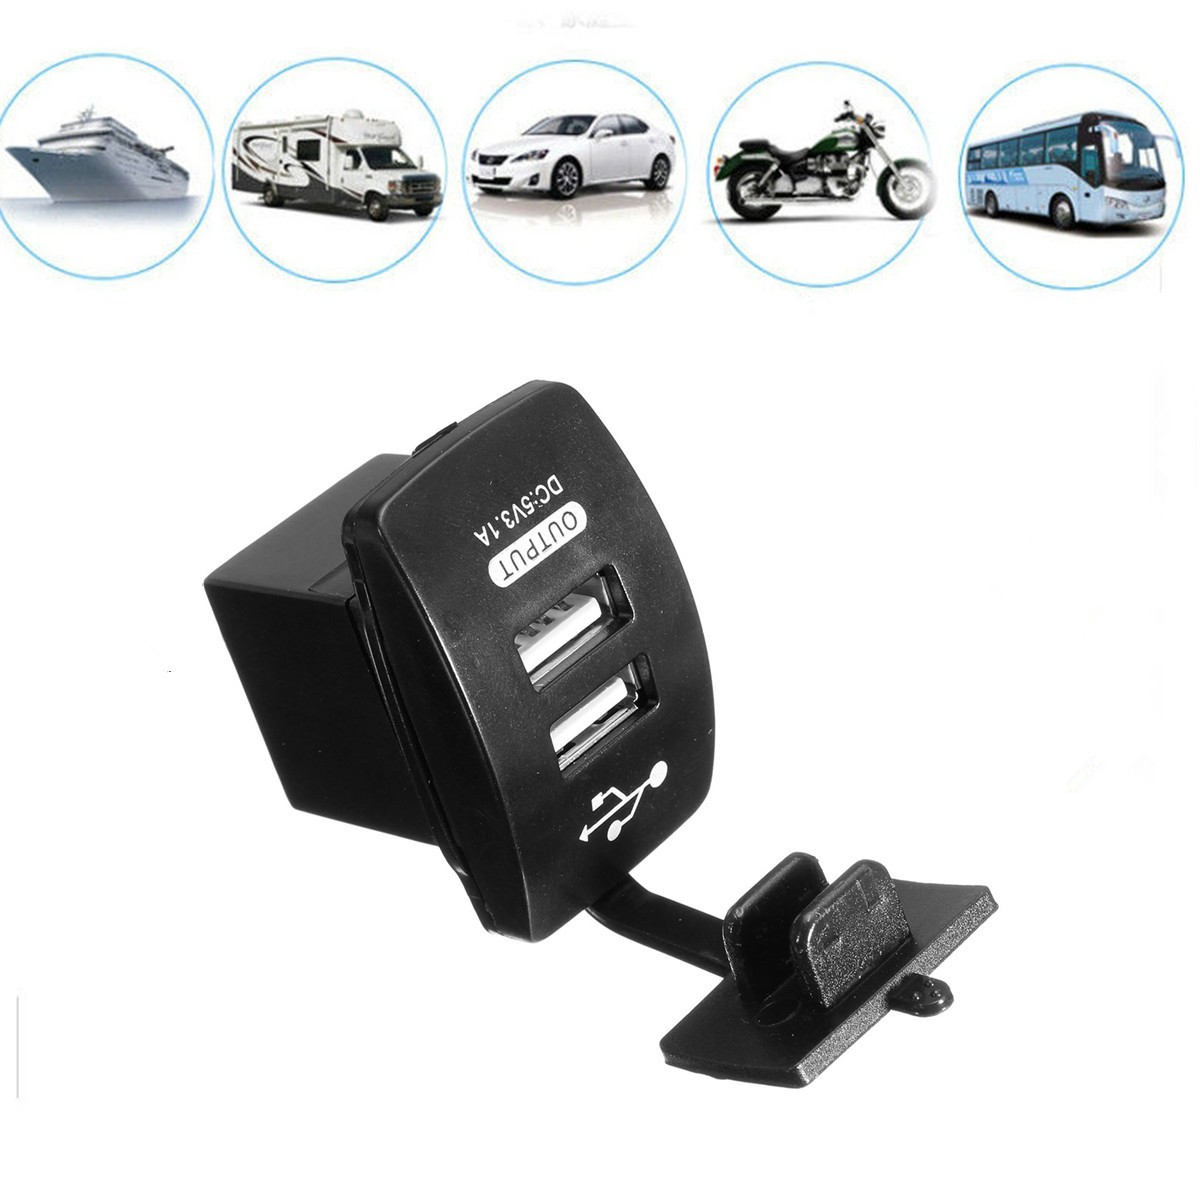 Dual Car Cigarette Lighter Socket Charger Power Adapter USB Splitter 12V Travel For Motorbike/ Boat/ Caravans